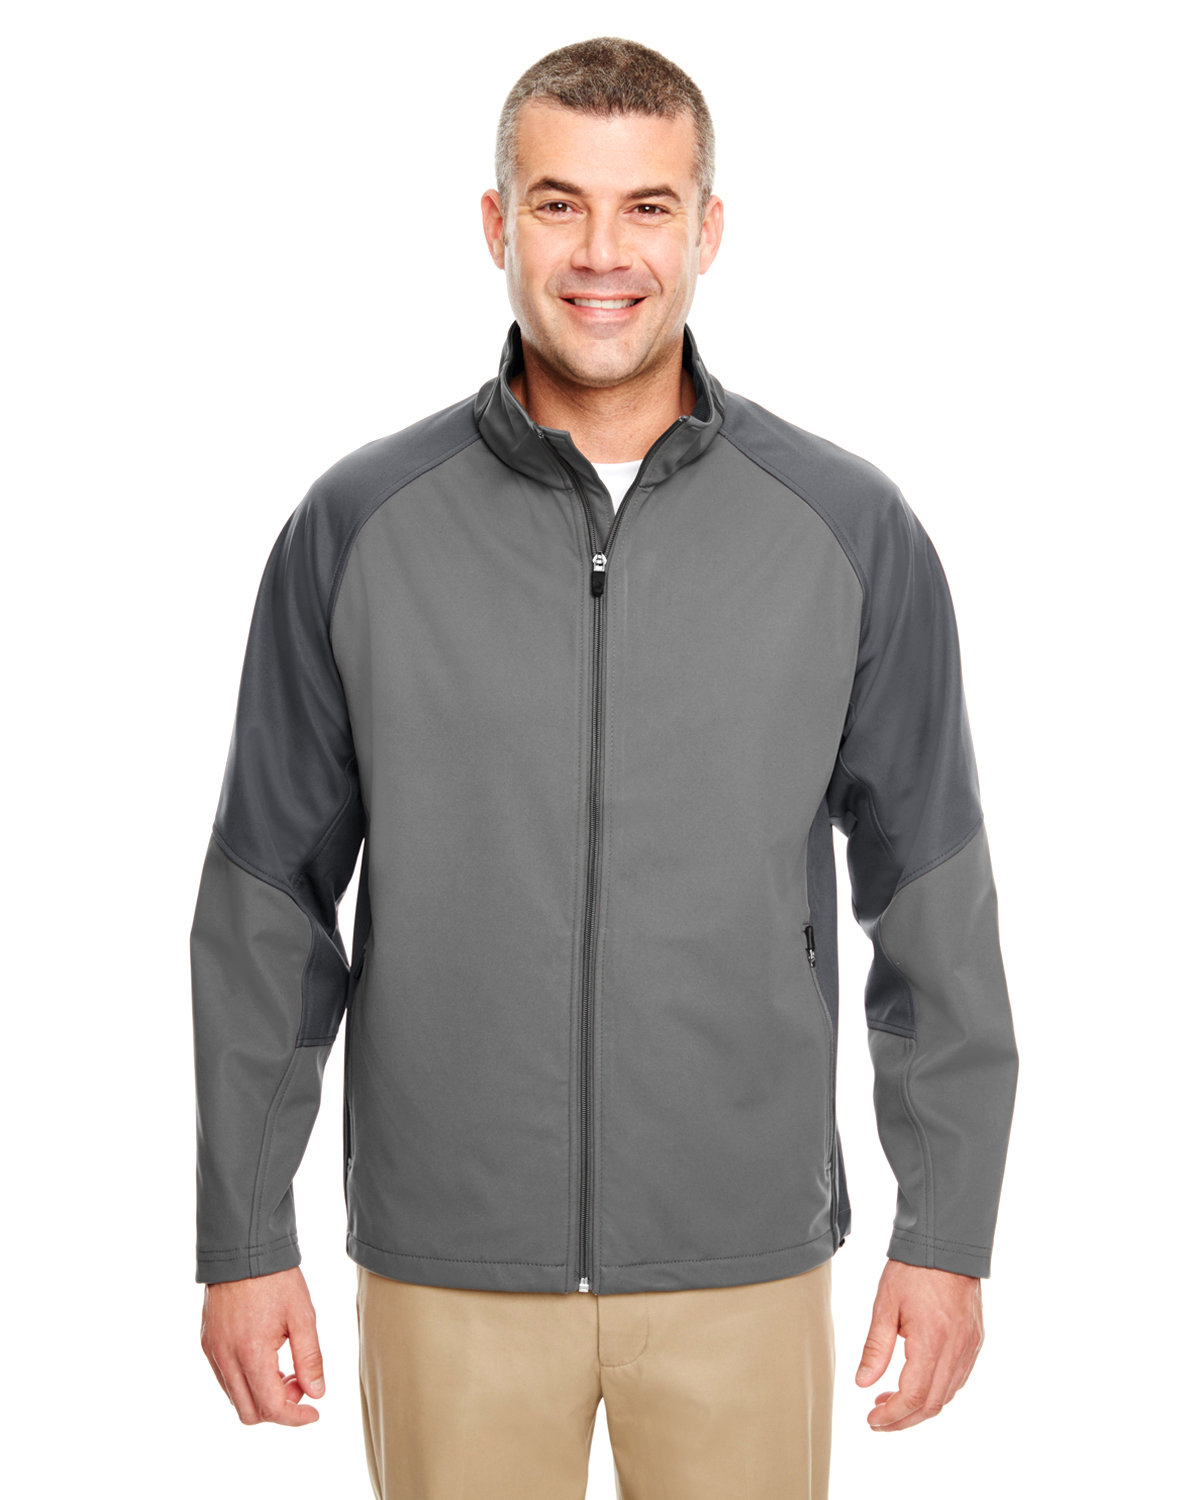 click to view IceGrey/Charcoal